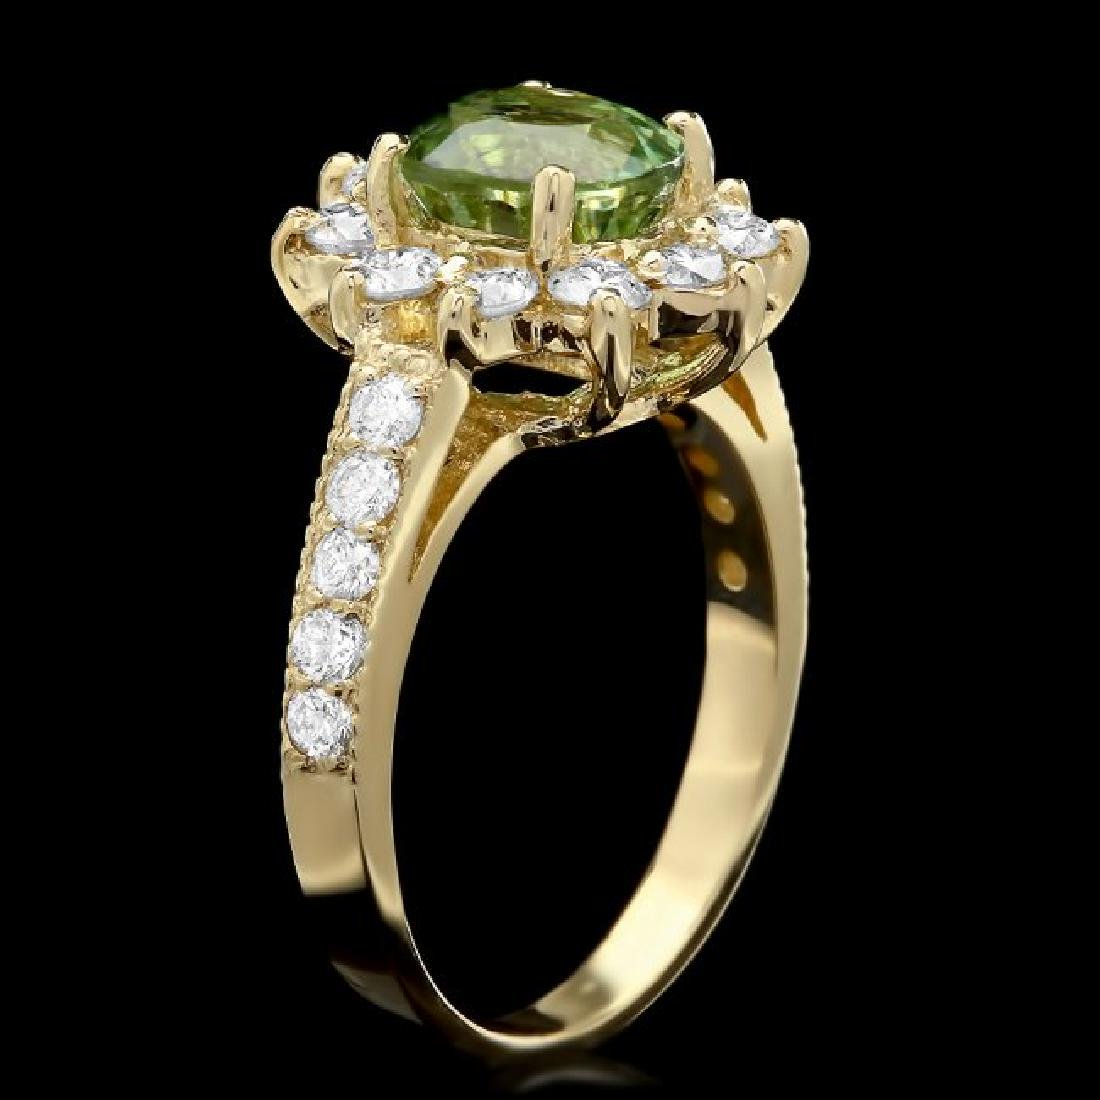 14k Gold 1.74ct Tourmaline 1.10ct Diamond Ring - 2